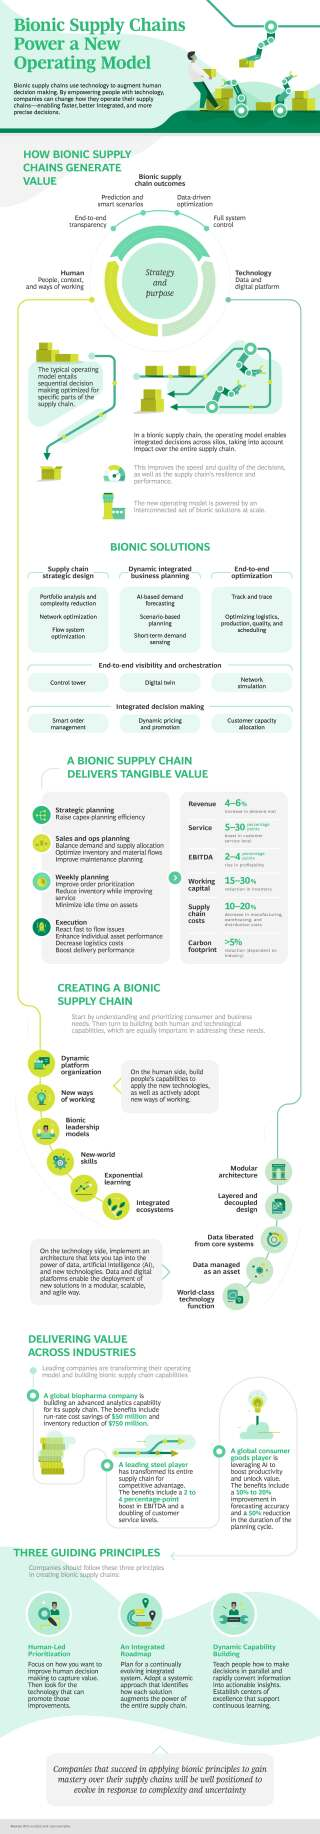 Bionic Supply Chains Power a New Operating Model Infographic